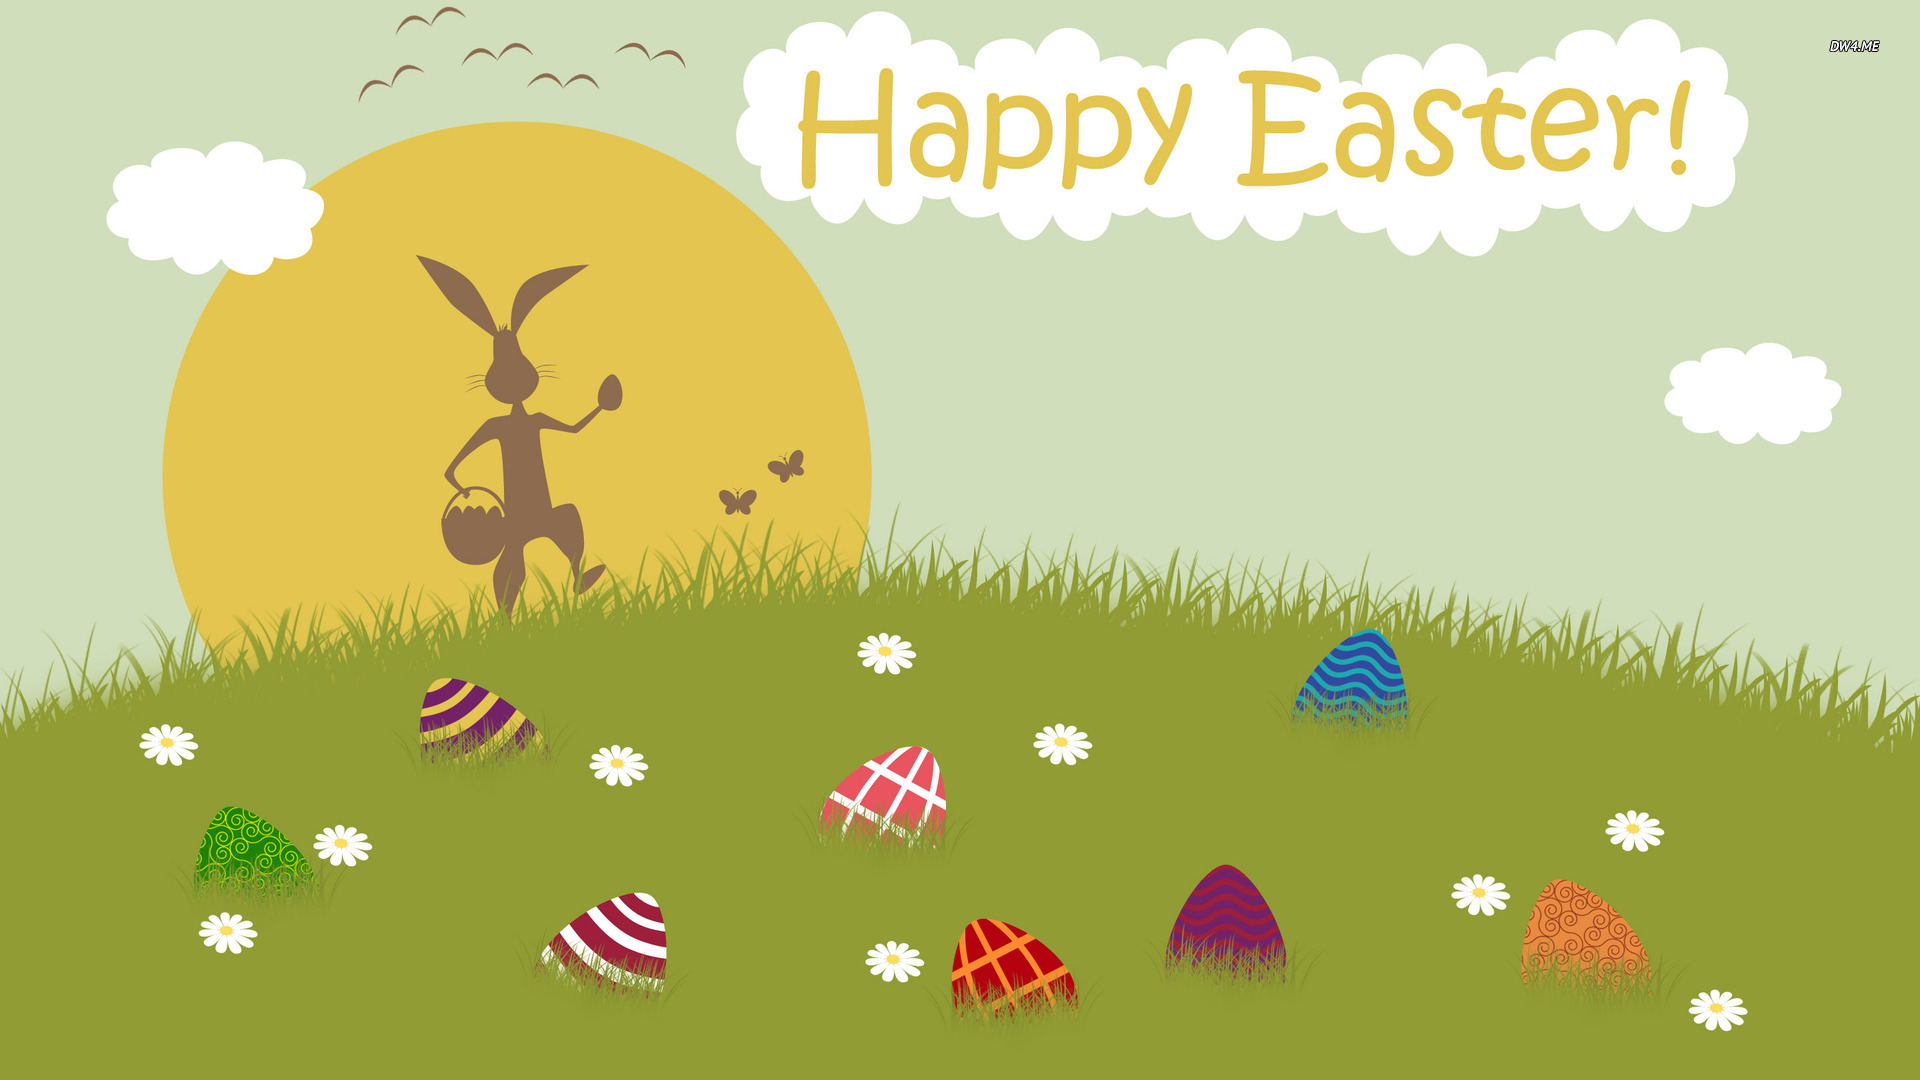 Happy Easter wallpaper   Holiday wallpapers   1274 1920x1080